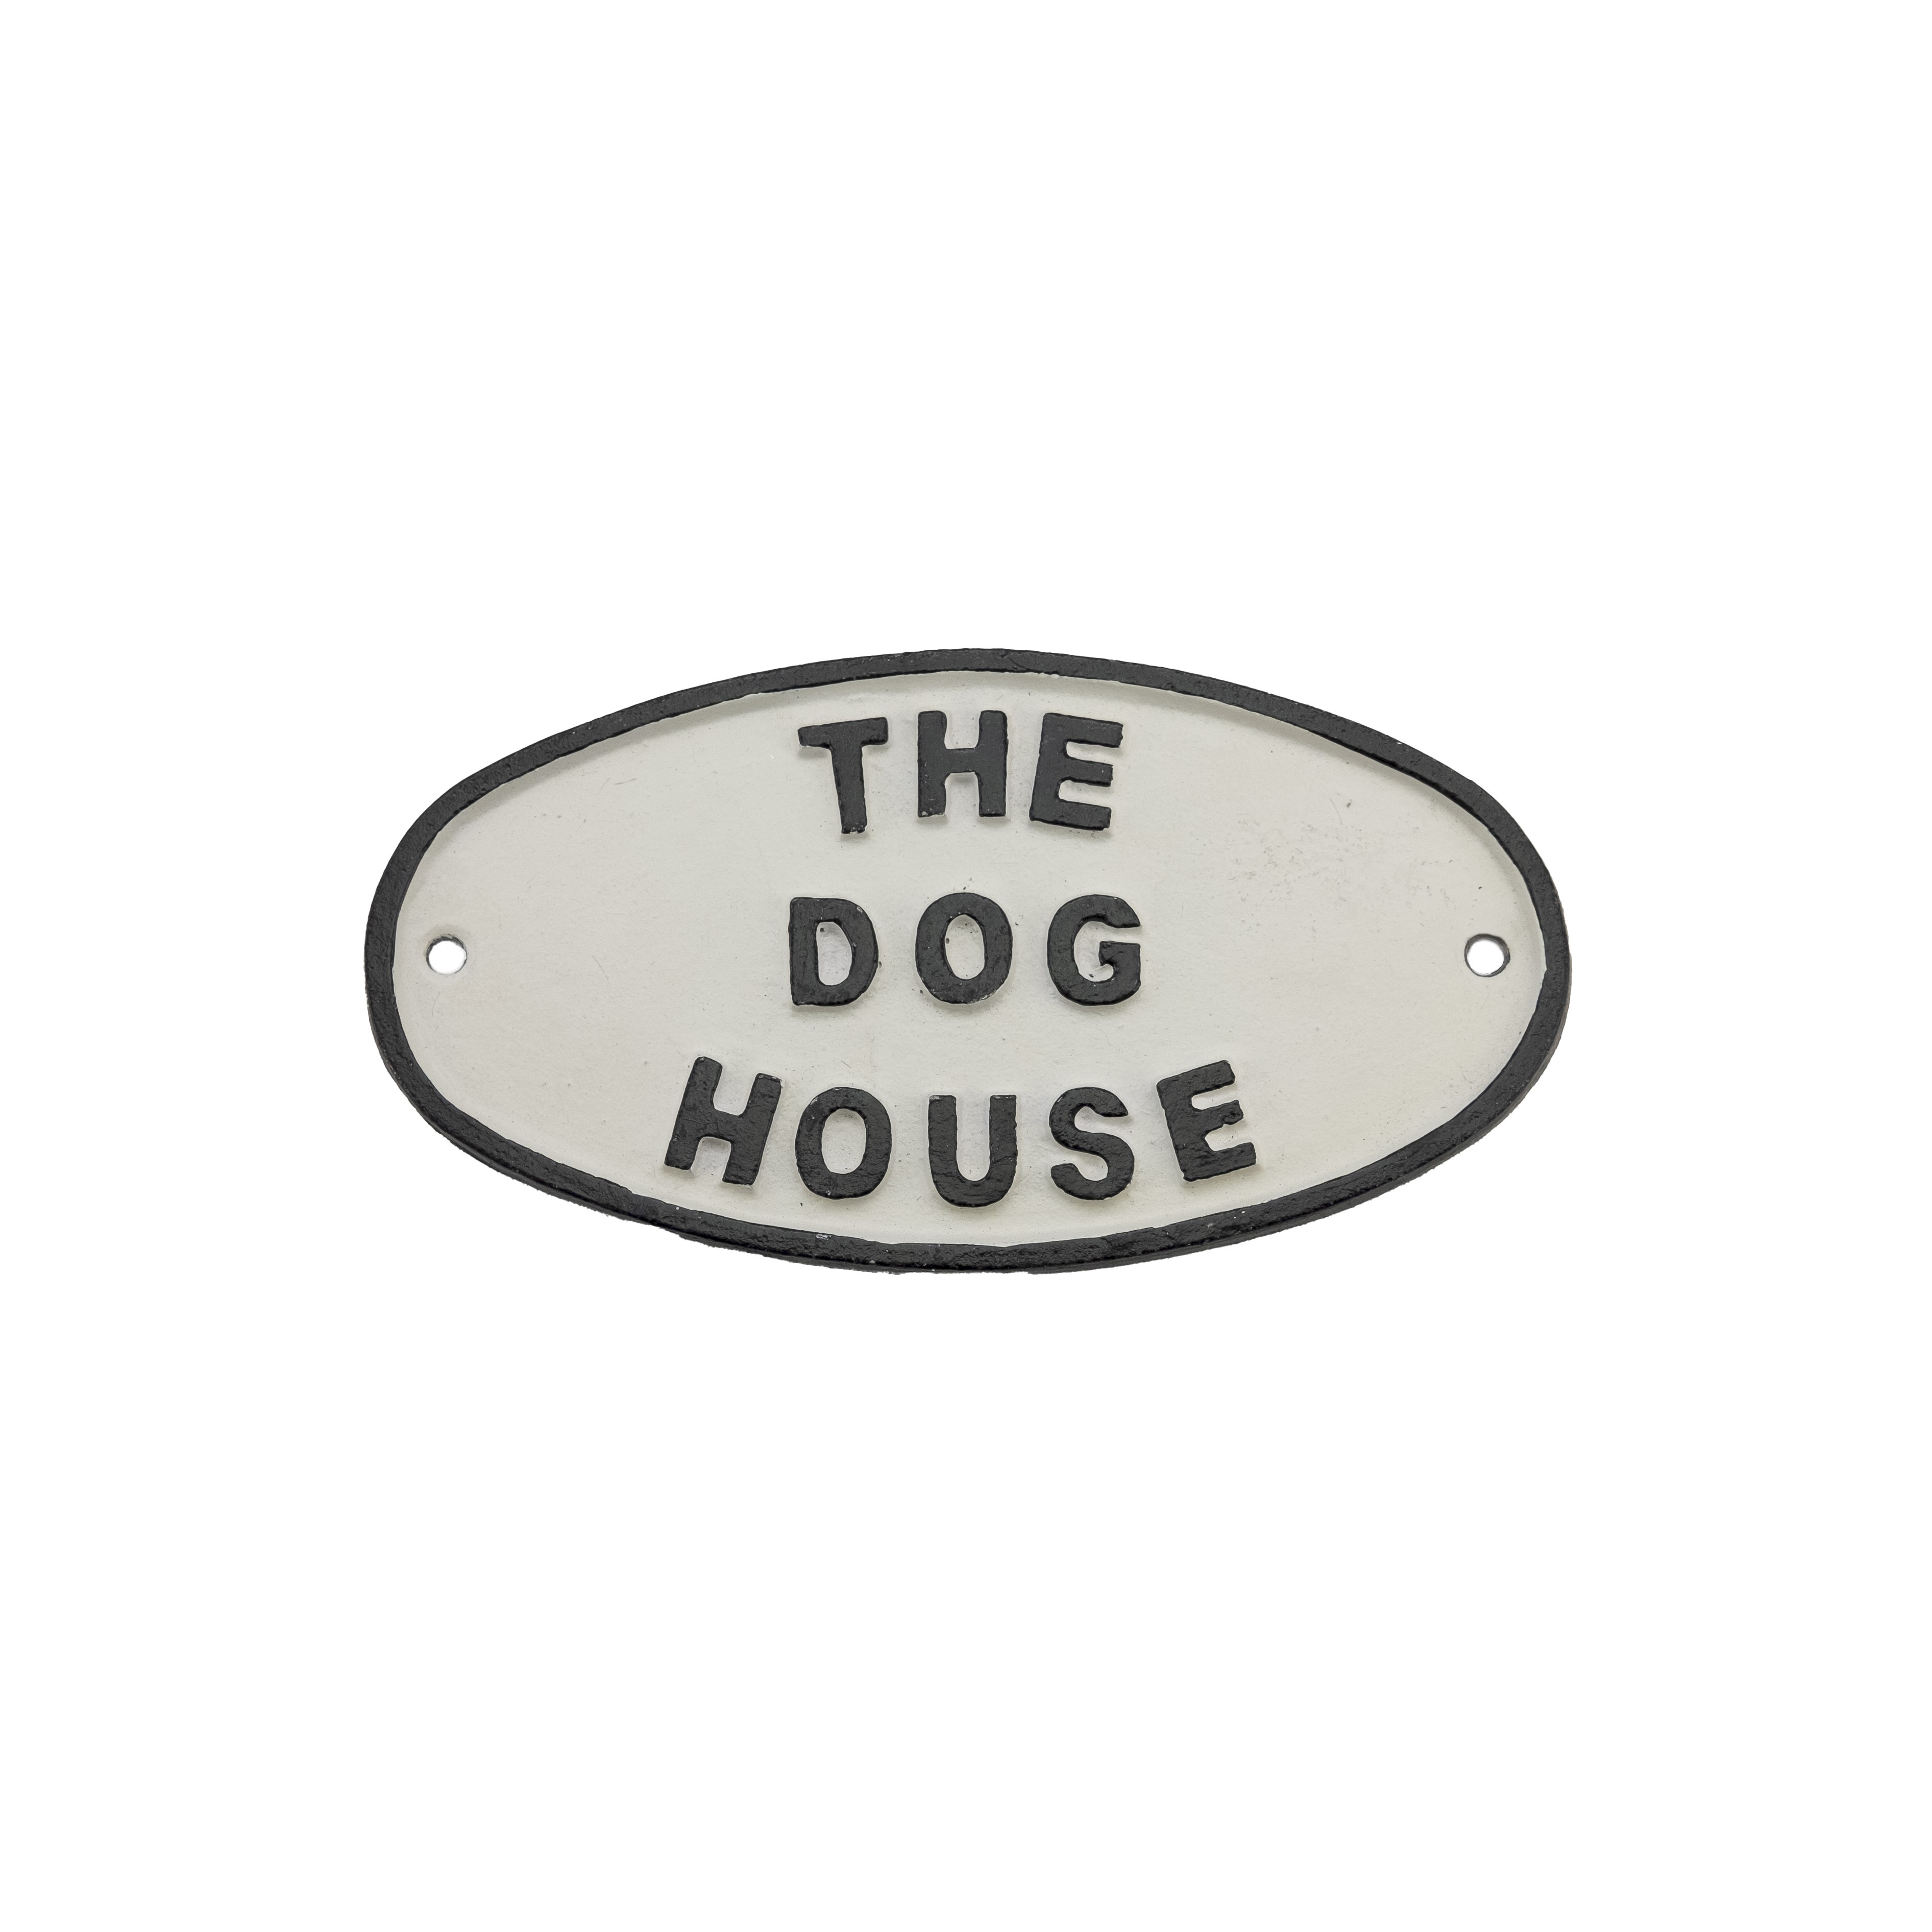 SIGN - THE DOG HOUSE